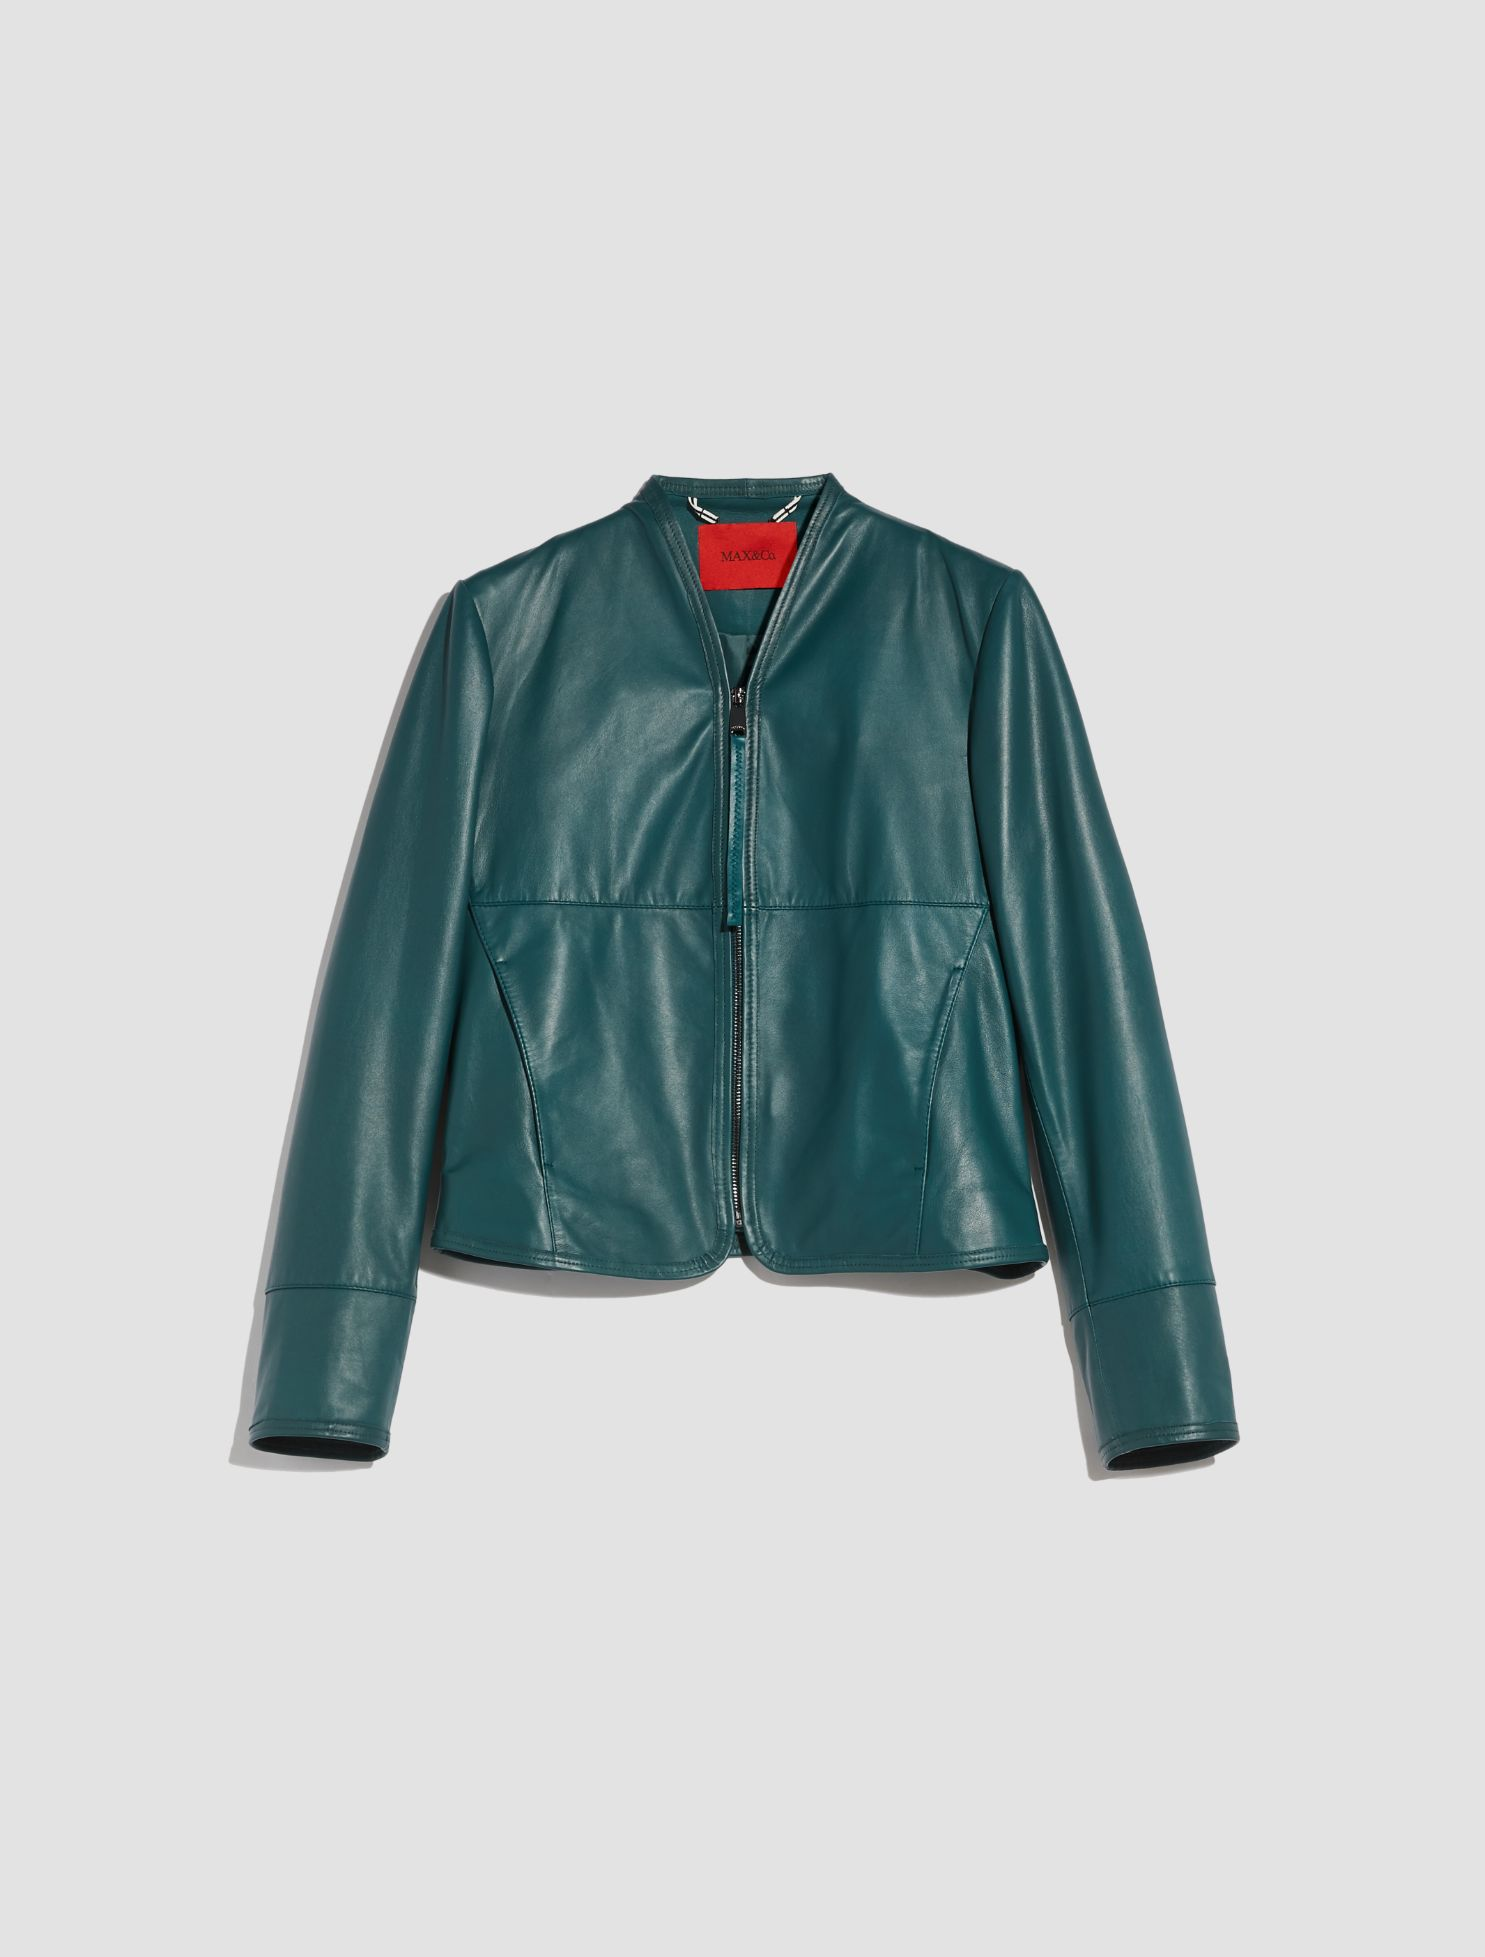 DEPONETE Leather jacket emerald green 5